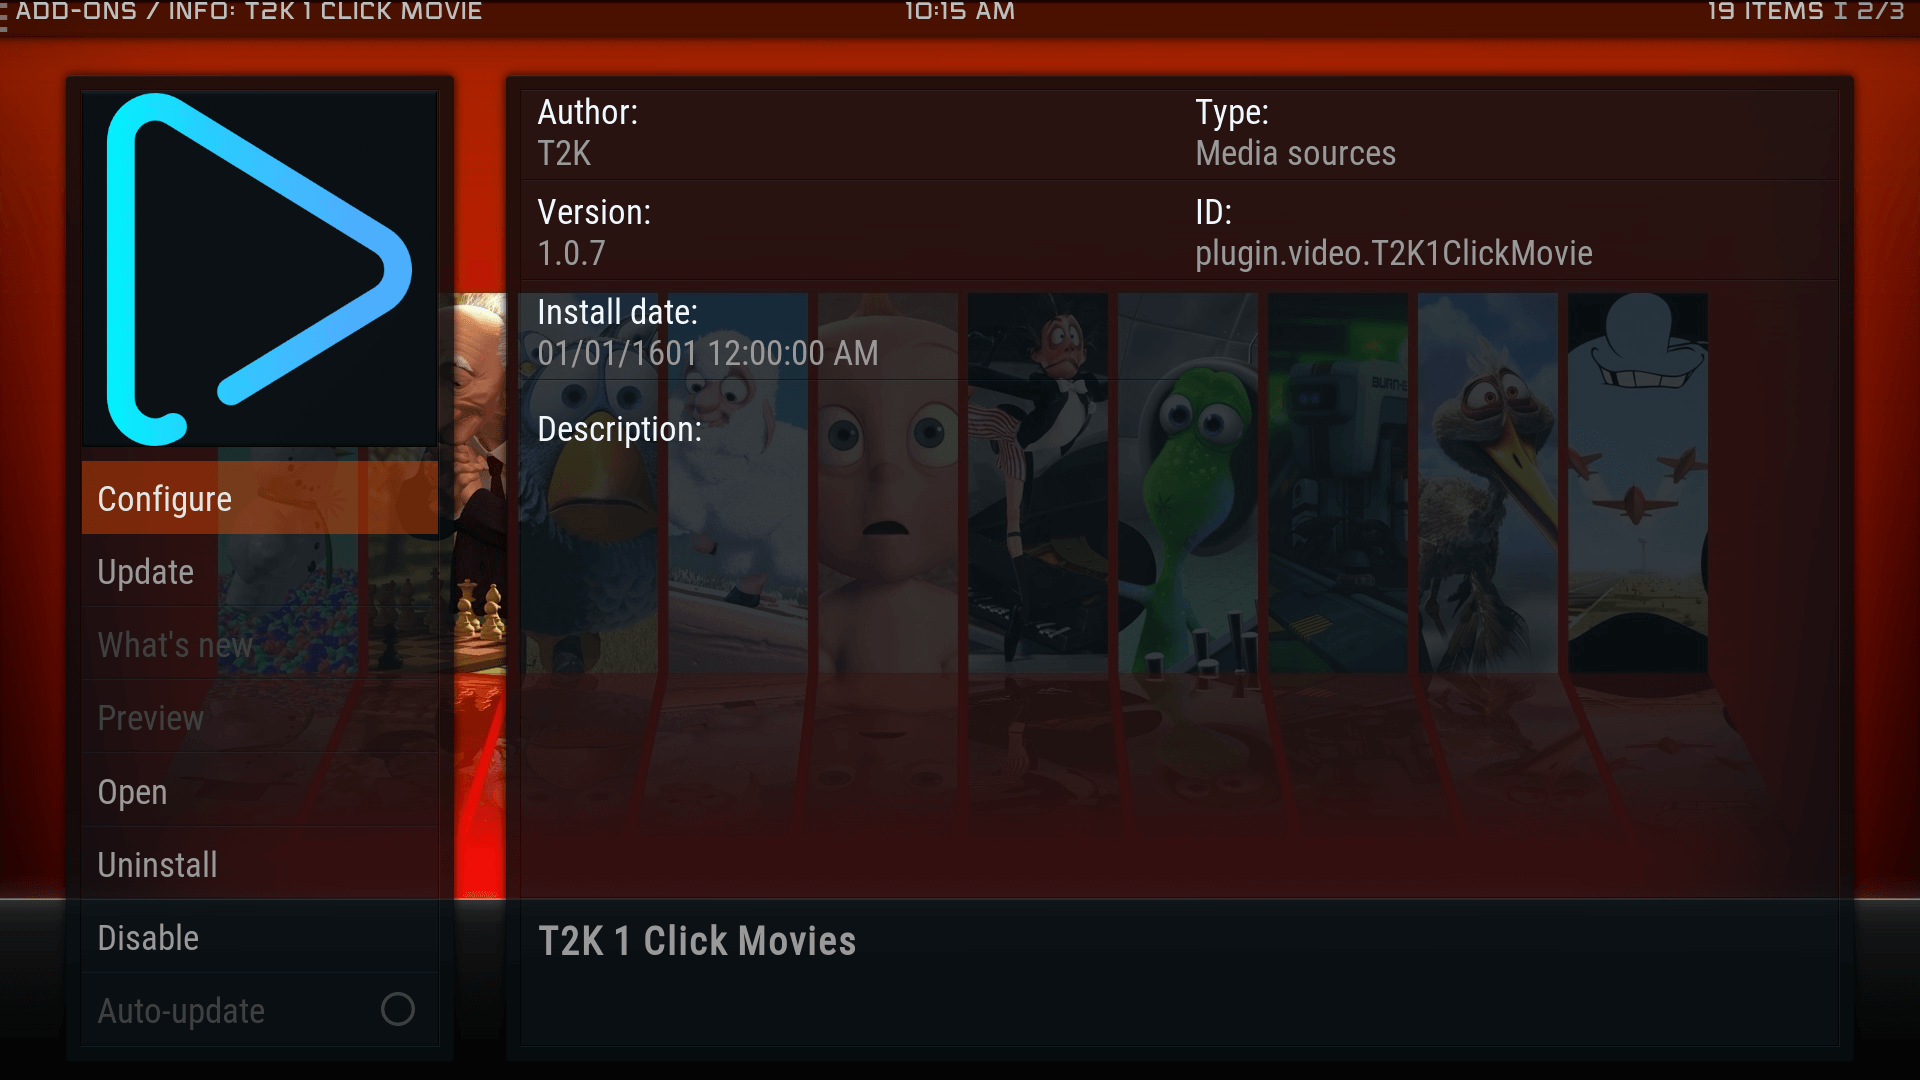 how to get add ons for movies on kodi